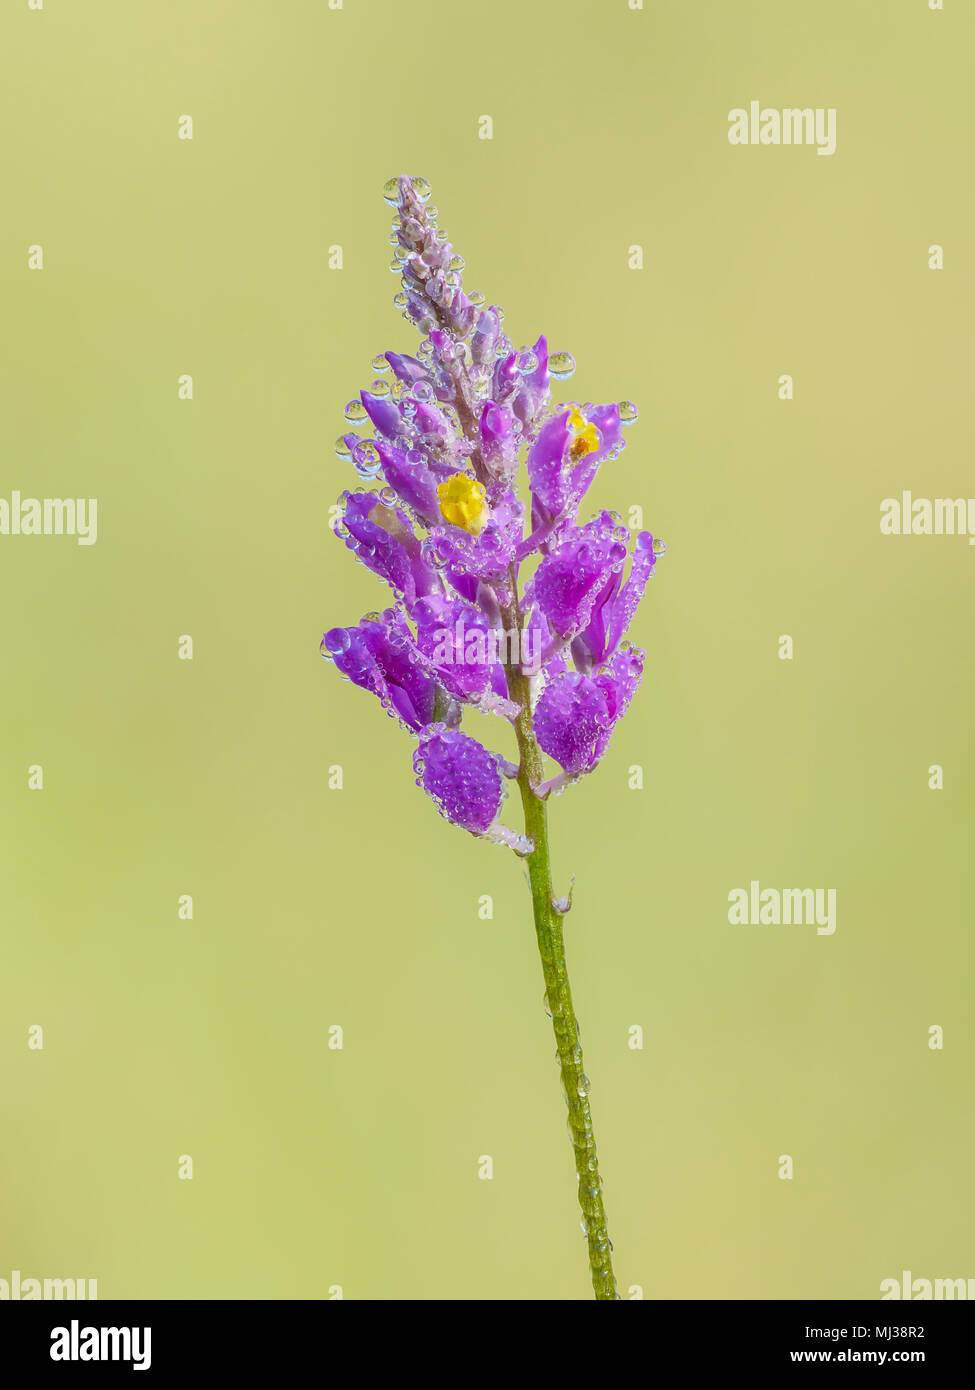 Dew covered flowers of a Chapman's Milkwort (Polygala chapmanii) inflorescence in spring. - Stock Image